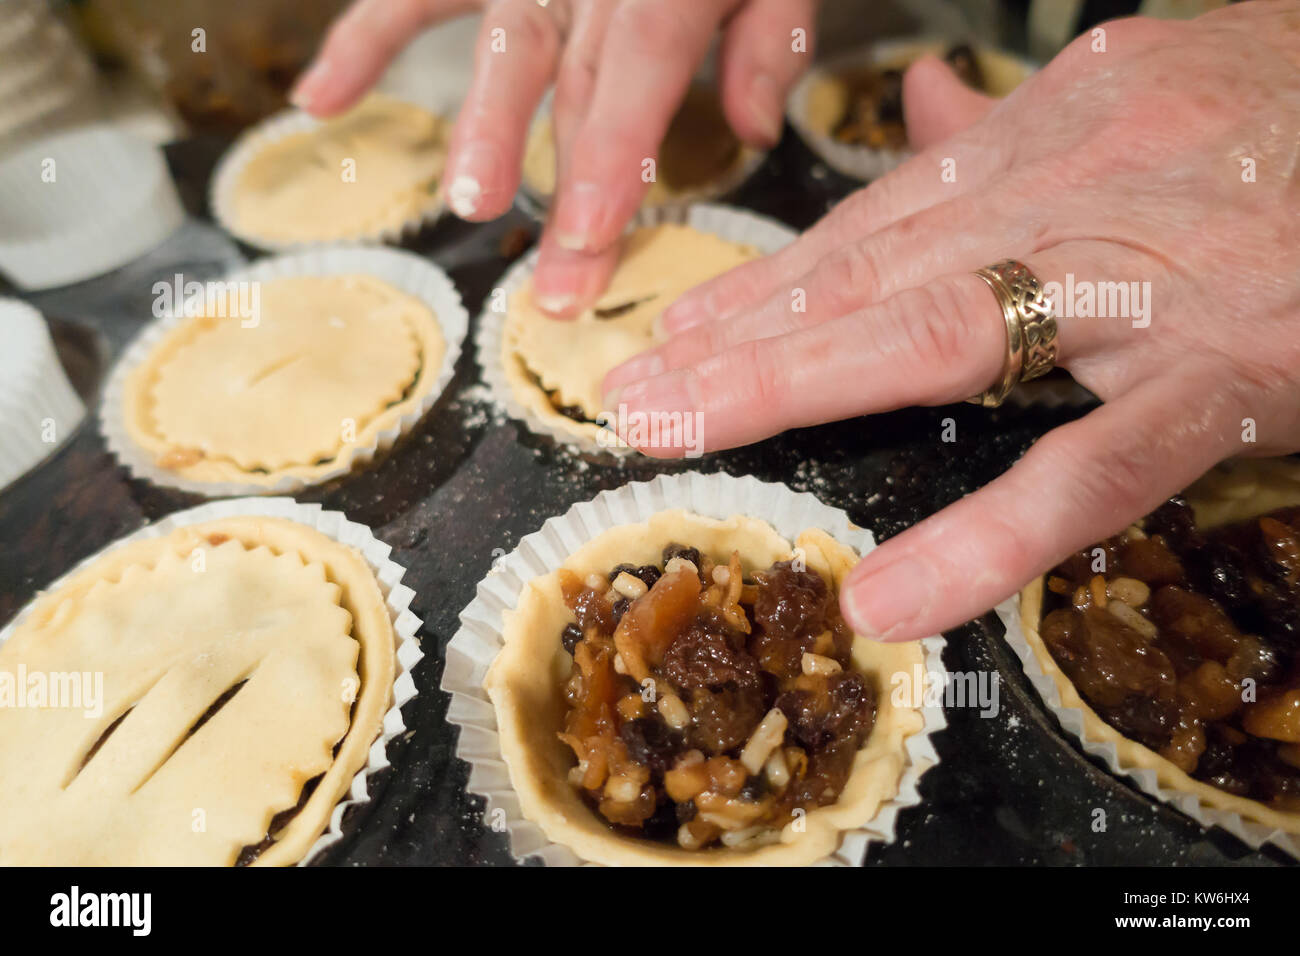 making-mince-pies-ladies-hands-place-circles-on-pasty-ontop-of-pies-KW6HX4.jpg